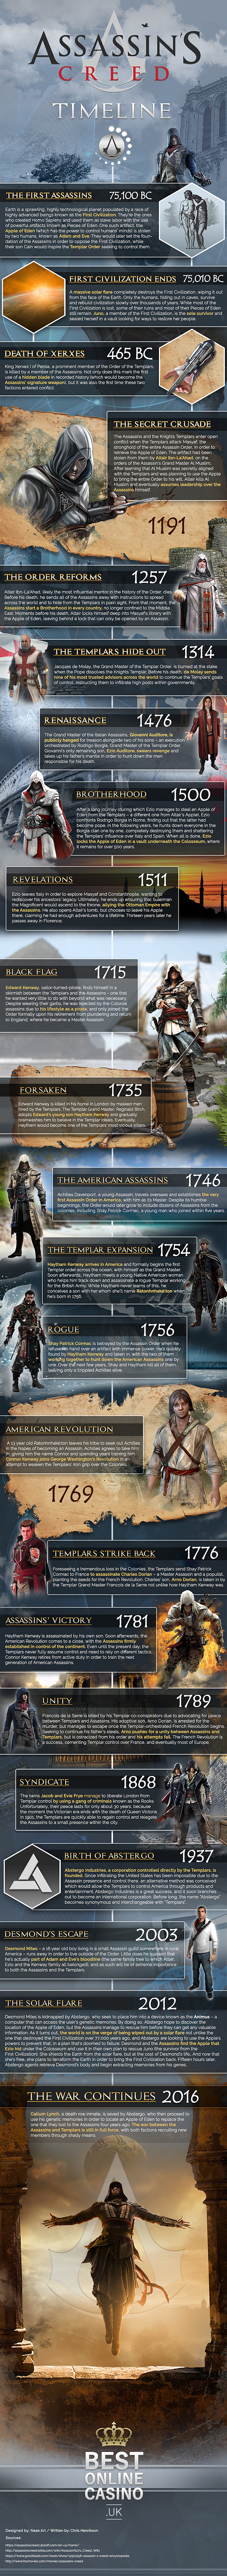 Assassin S Creed Timeline